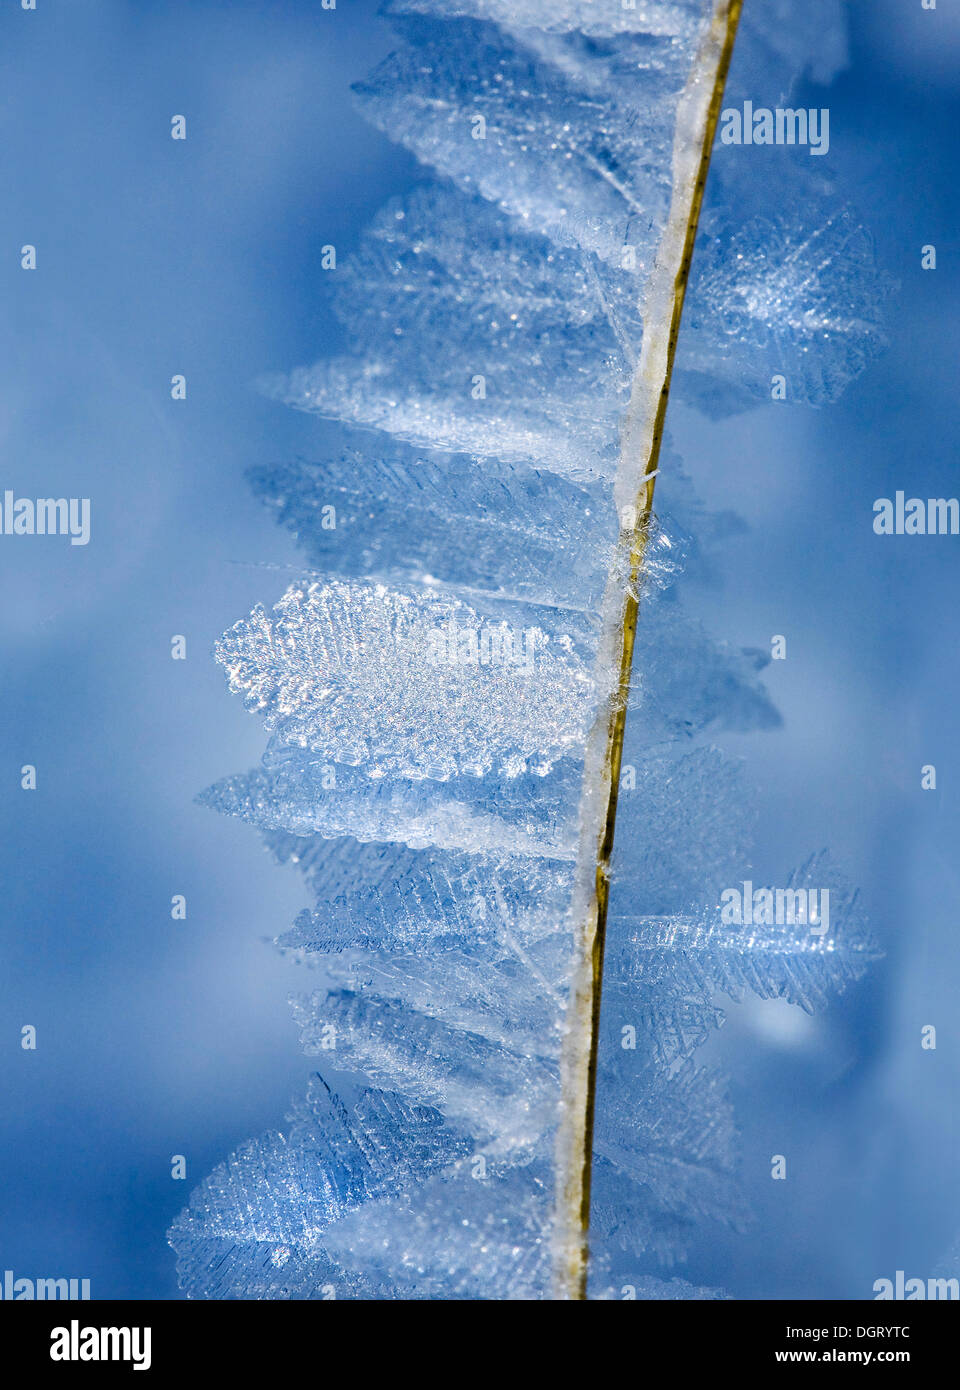 Hoar frost crystals on a blade of grass - Stock Image